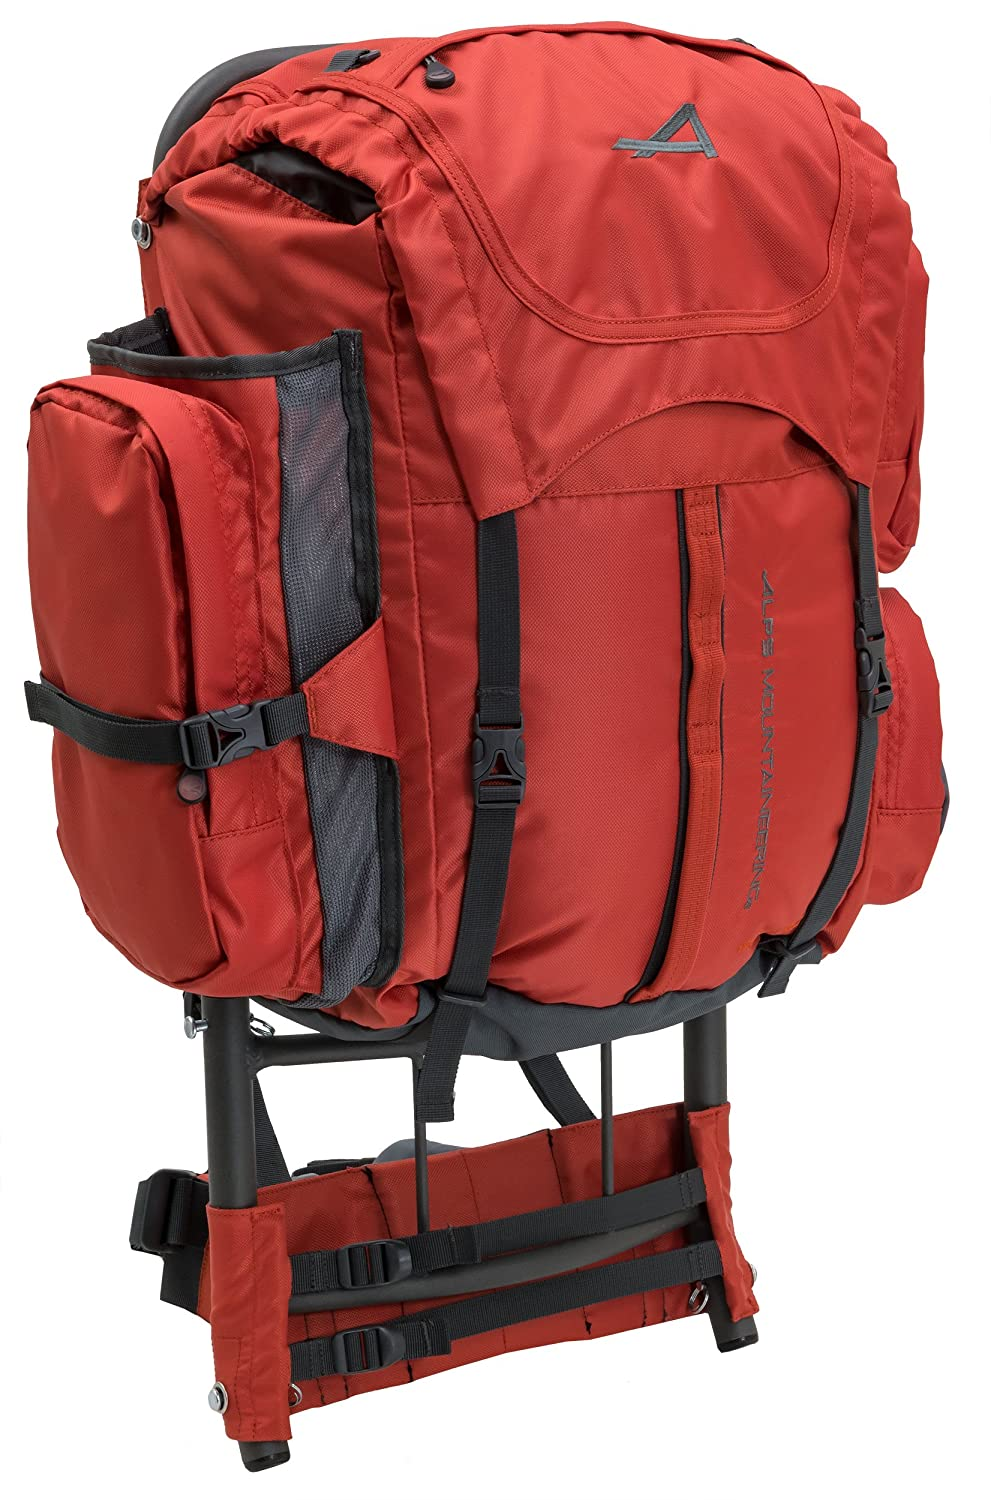 ALPS Mountaineering Red Rock External Frame Pack, 34 Liters 3402229